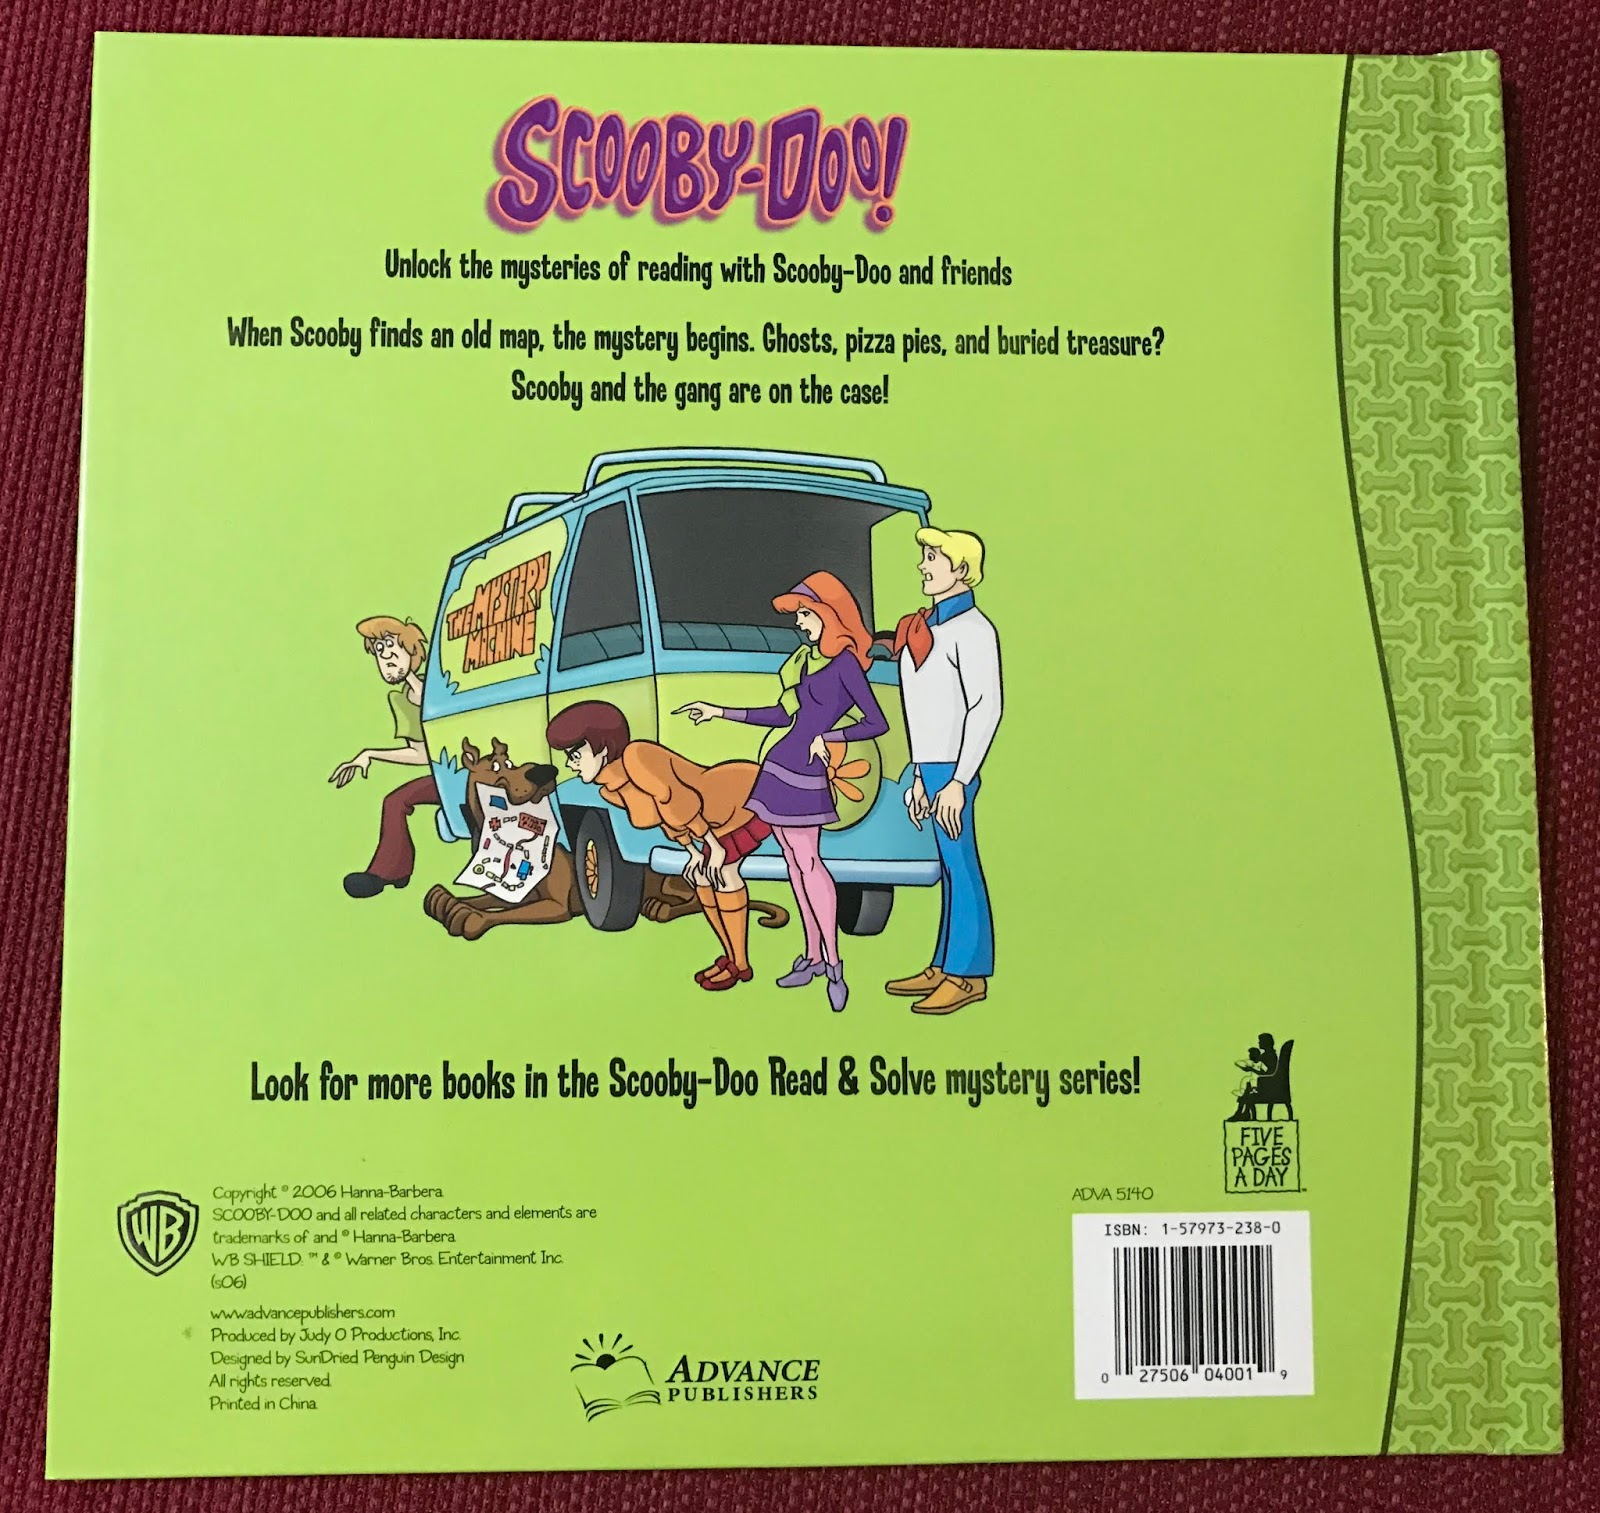 ScoobyAddict's Blog: My Scooby Stuff - Day 224 - Map in the ... on scooby doo ruh-roh, scooby doo the mystery car, scooby doo adventures,